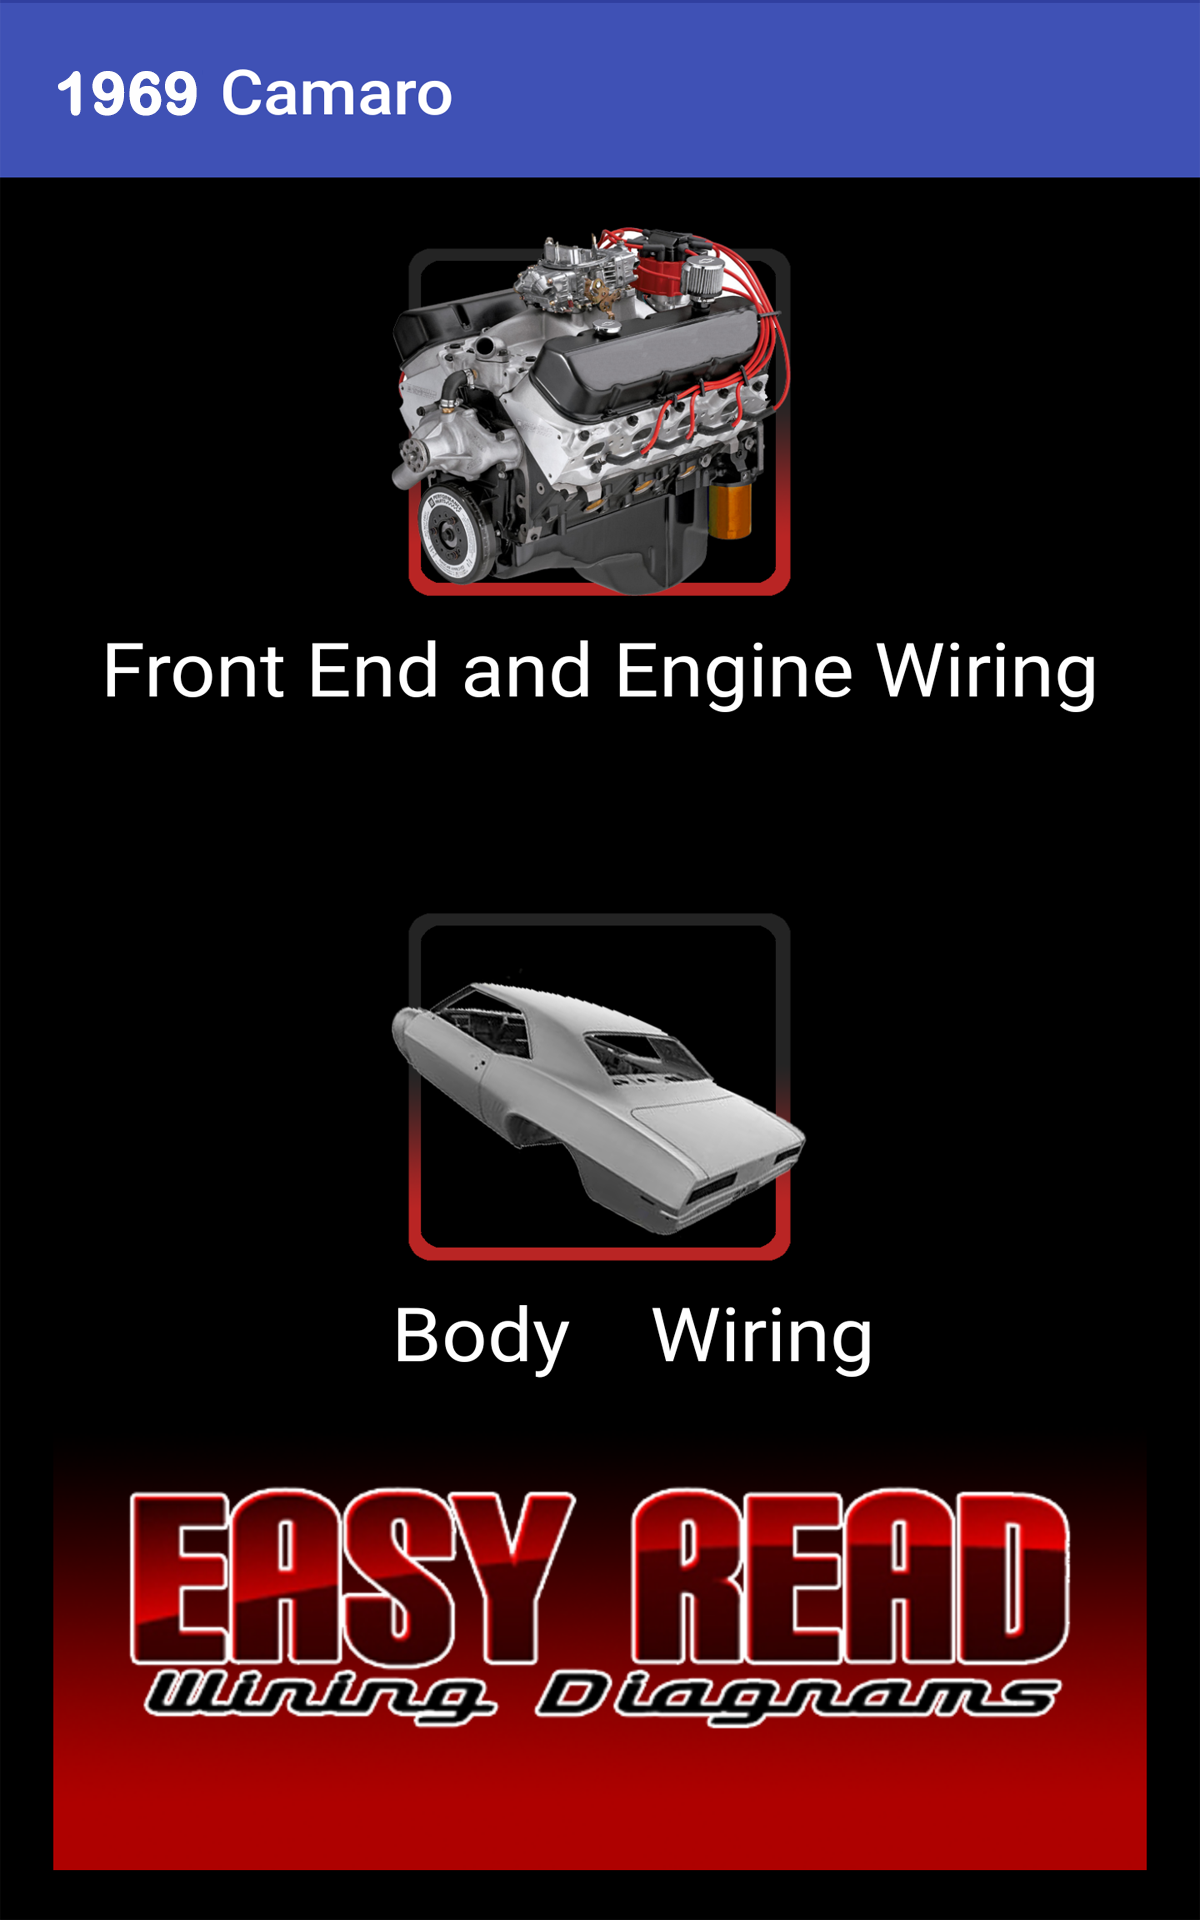 Amazon Com 1969 Camaro Wiring Diagram Appstore For Android